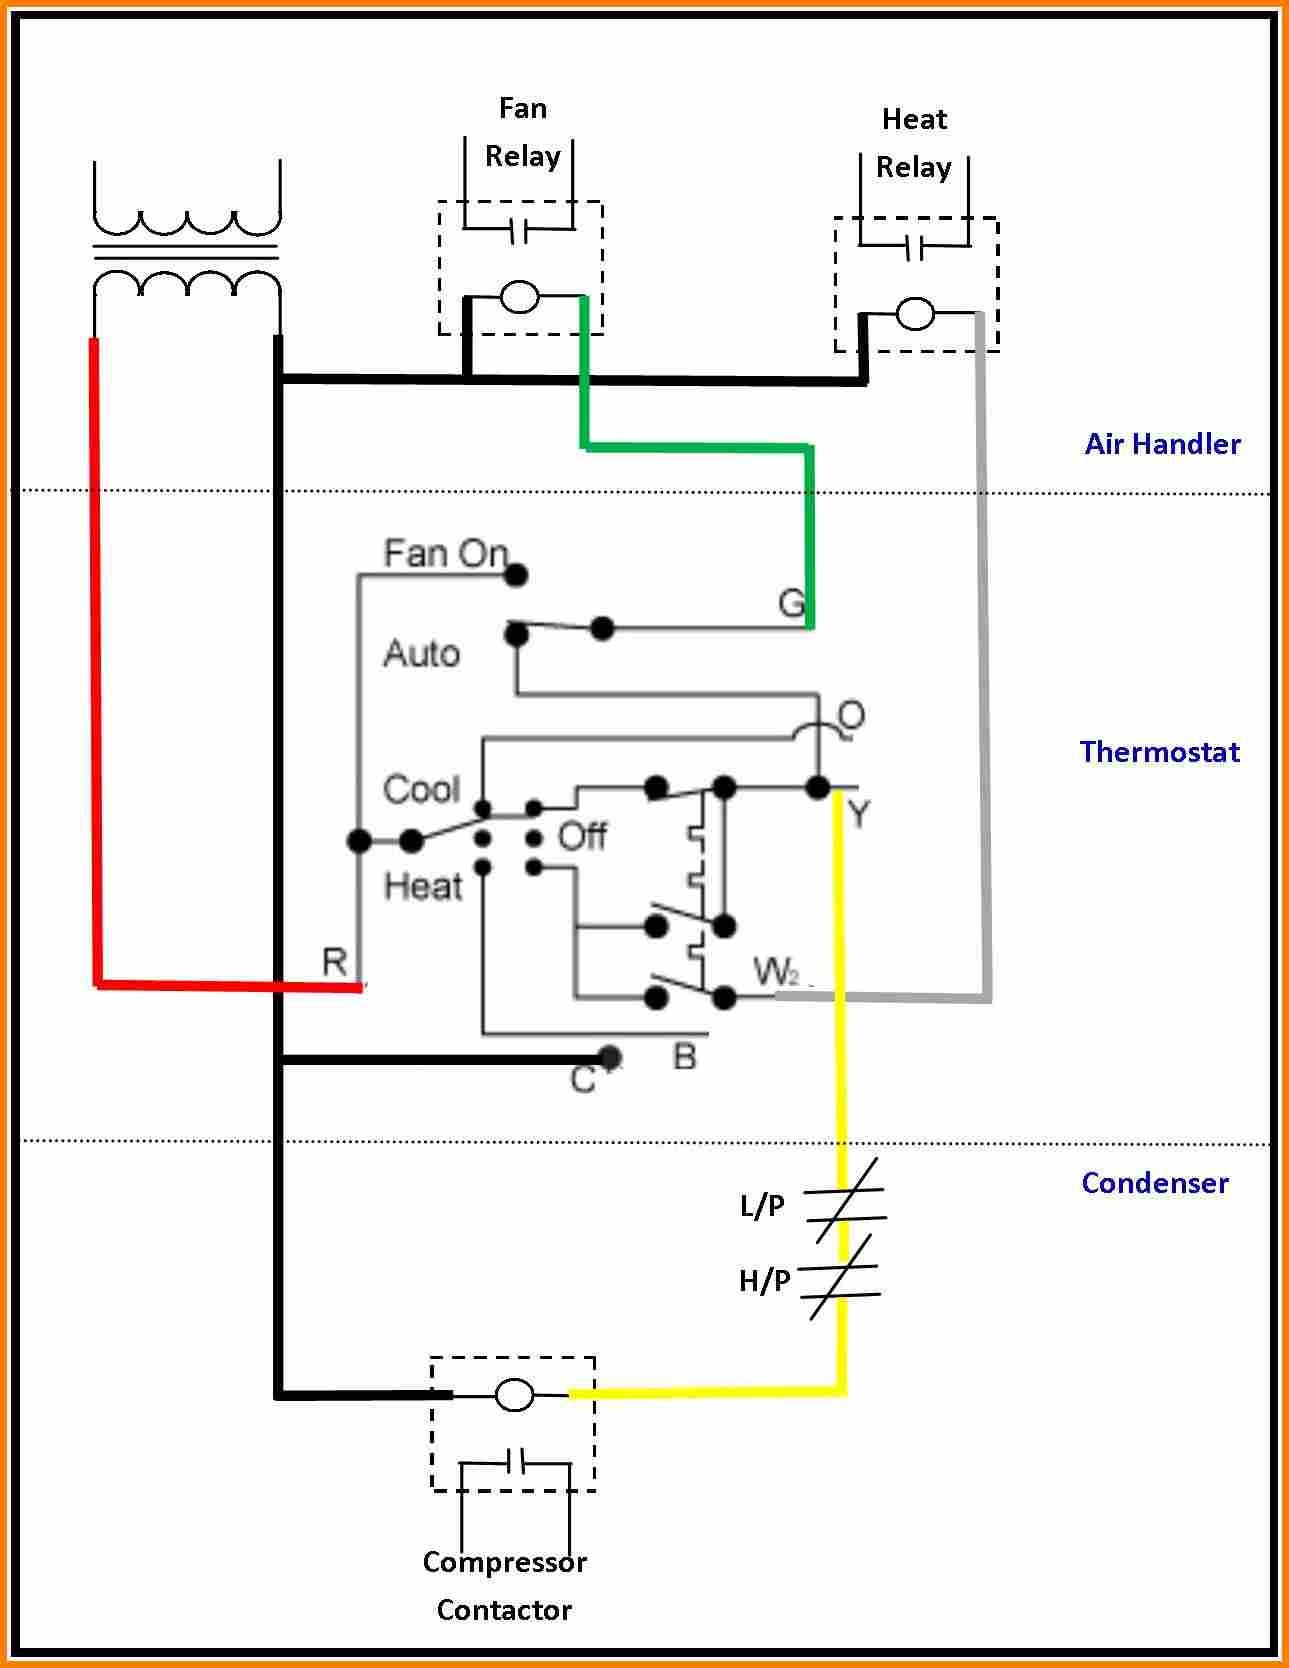 Armstrong Gas Heater Wiring Diagram | Wiring Diagram Centre on furnace relay diagram, furnace wiring symbols, furnace thermostat diagram, furnace schematic, furnace hvac diagram, furnace repair, furnace plumbing diagram, furnace controls diagram, gas furnace diagram, furnace transformer diagram, furnace fan diagram, furnace ductwork diagram, furnace motor diagram, furnace heater diagram, furnace fan belt, furnace filter diagram, furnace maintenance diagram, furnace switch,